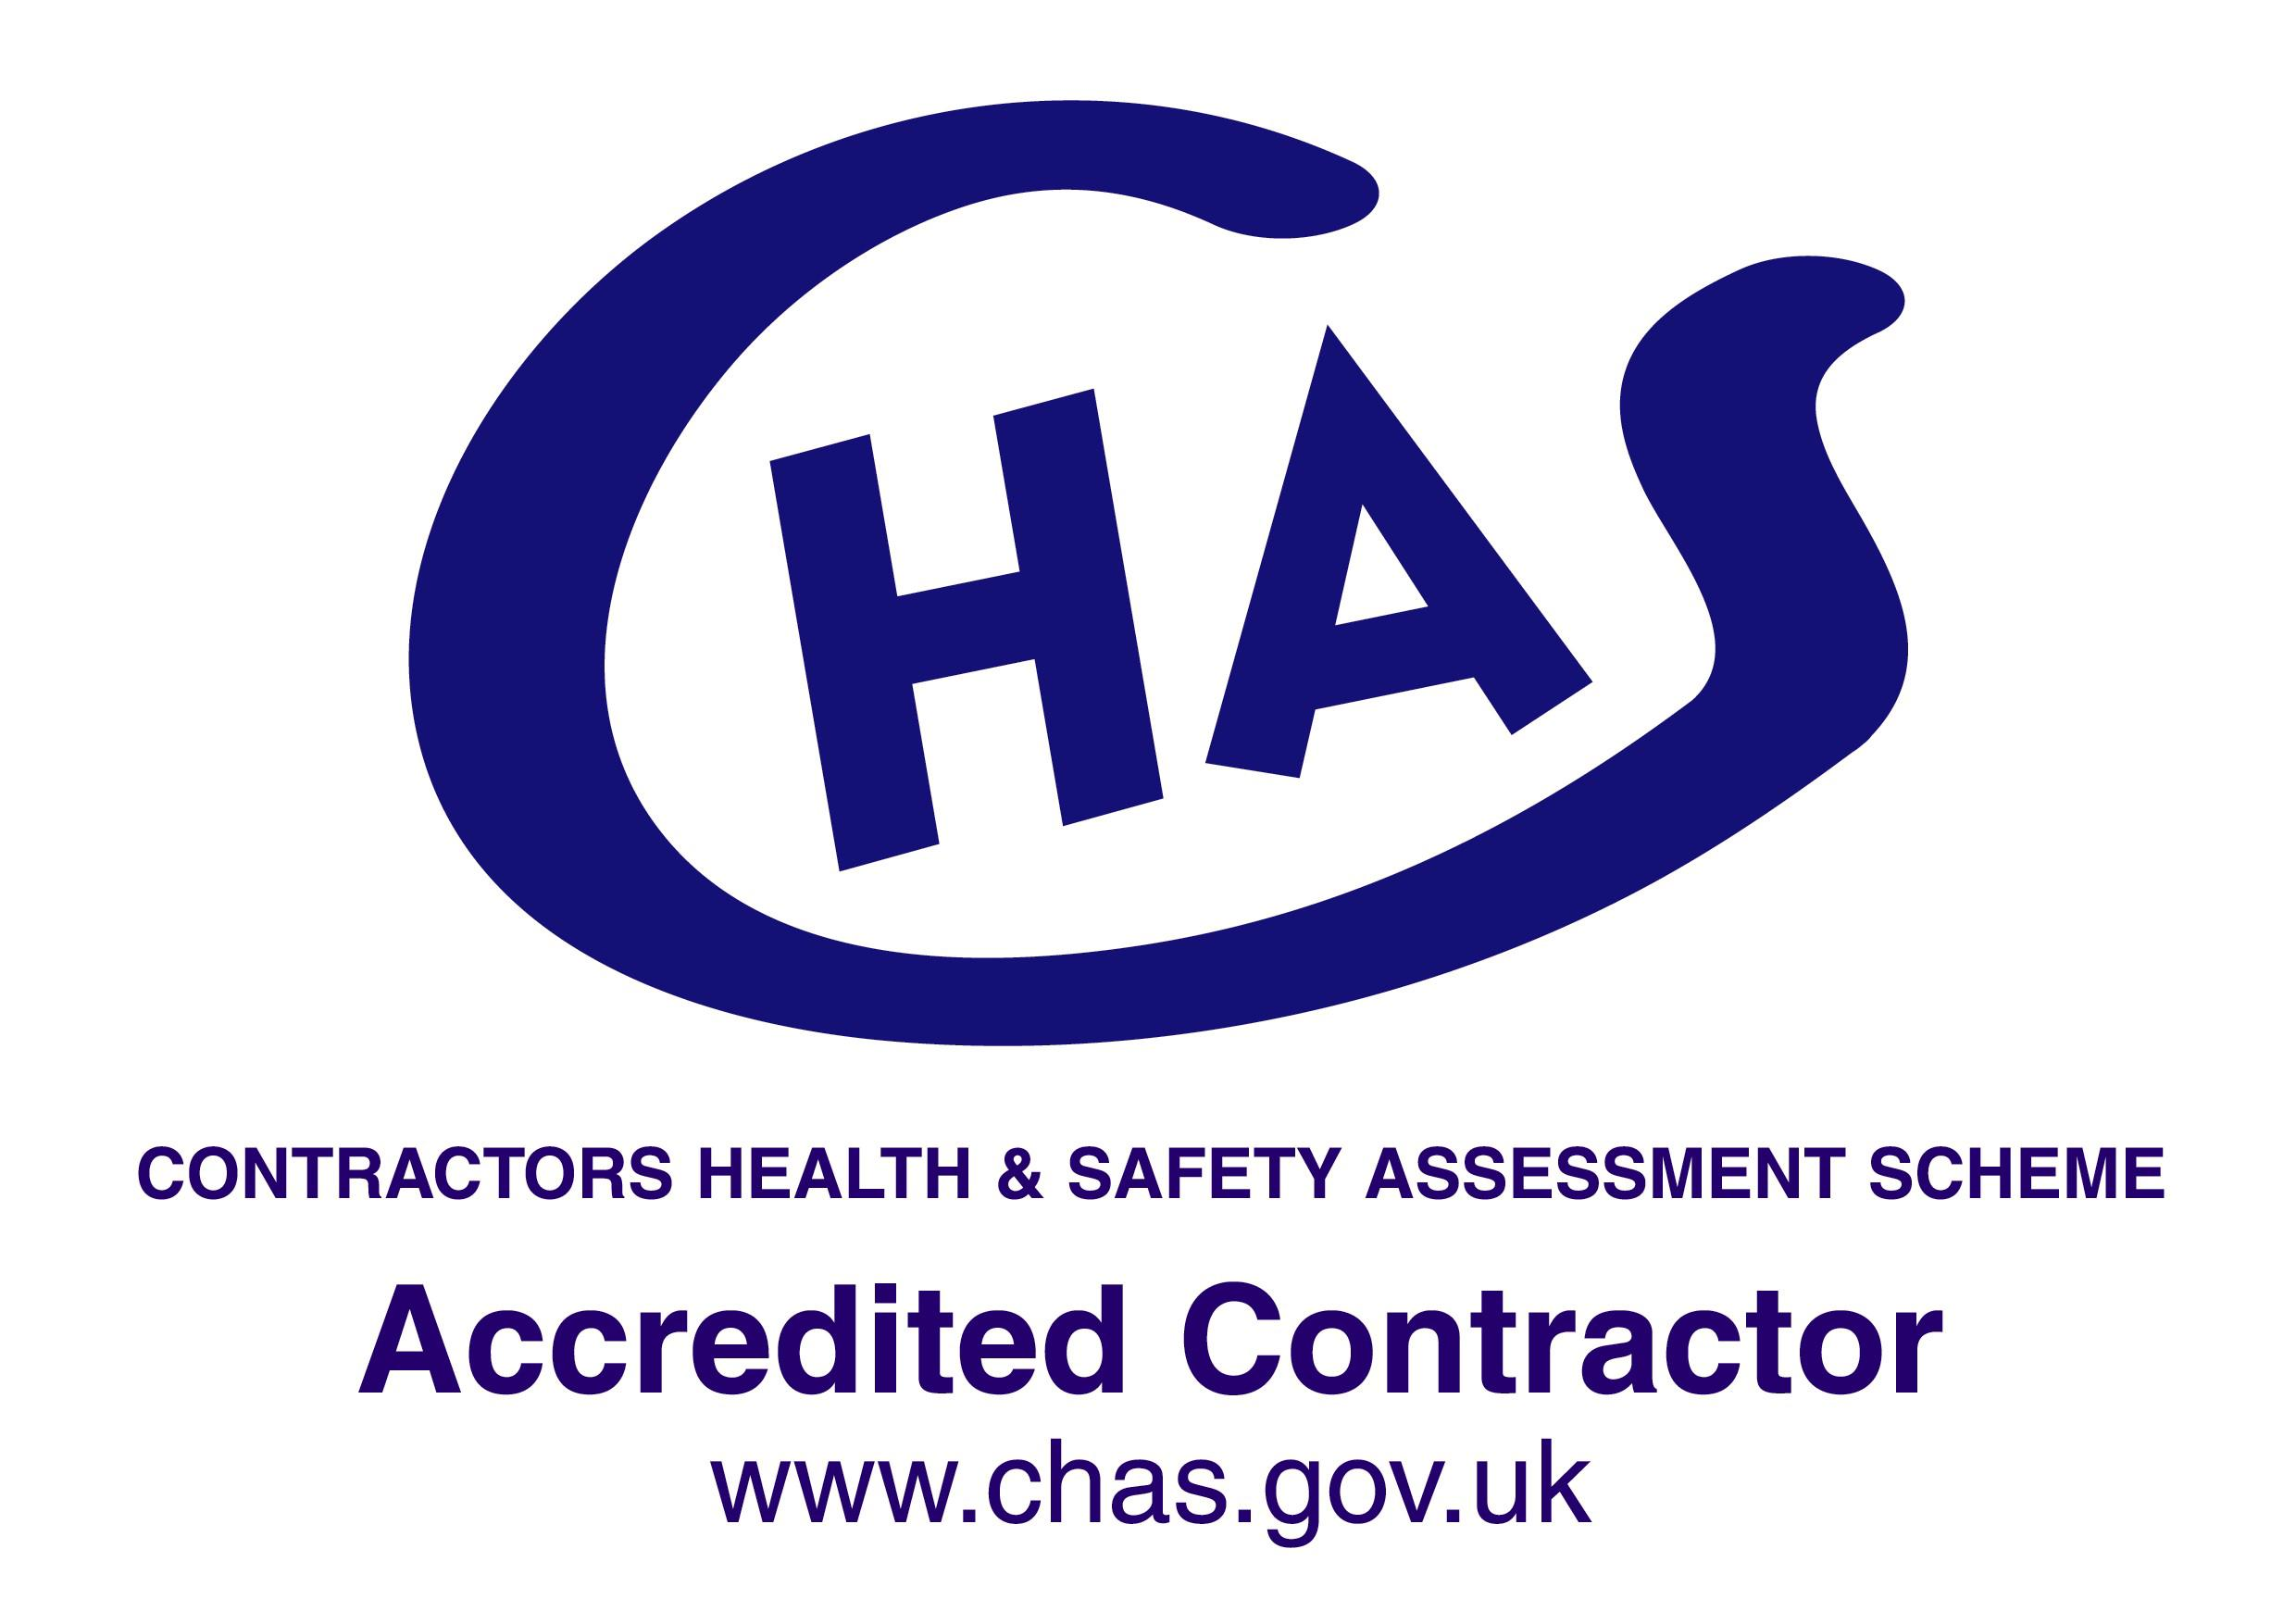 Contractors Health & Safety (CHAS) logo